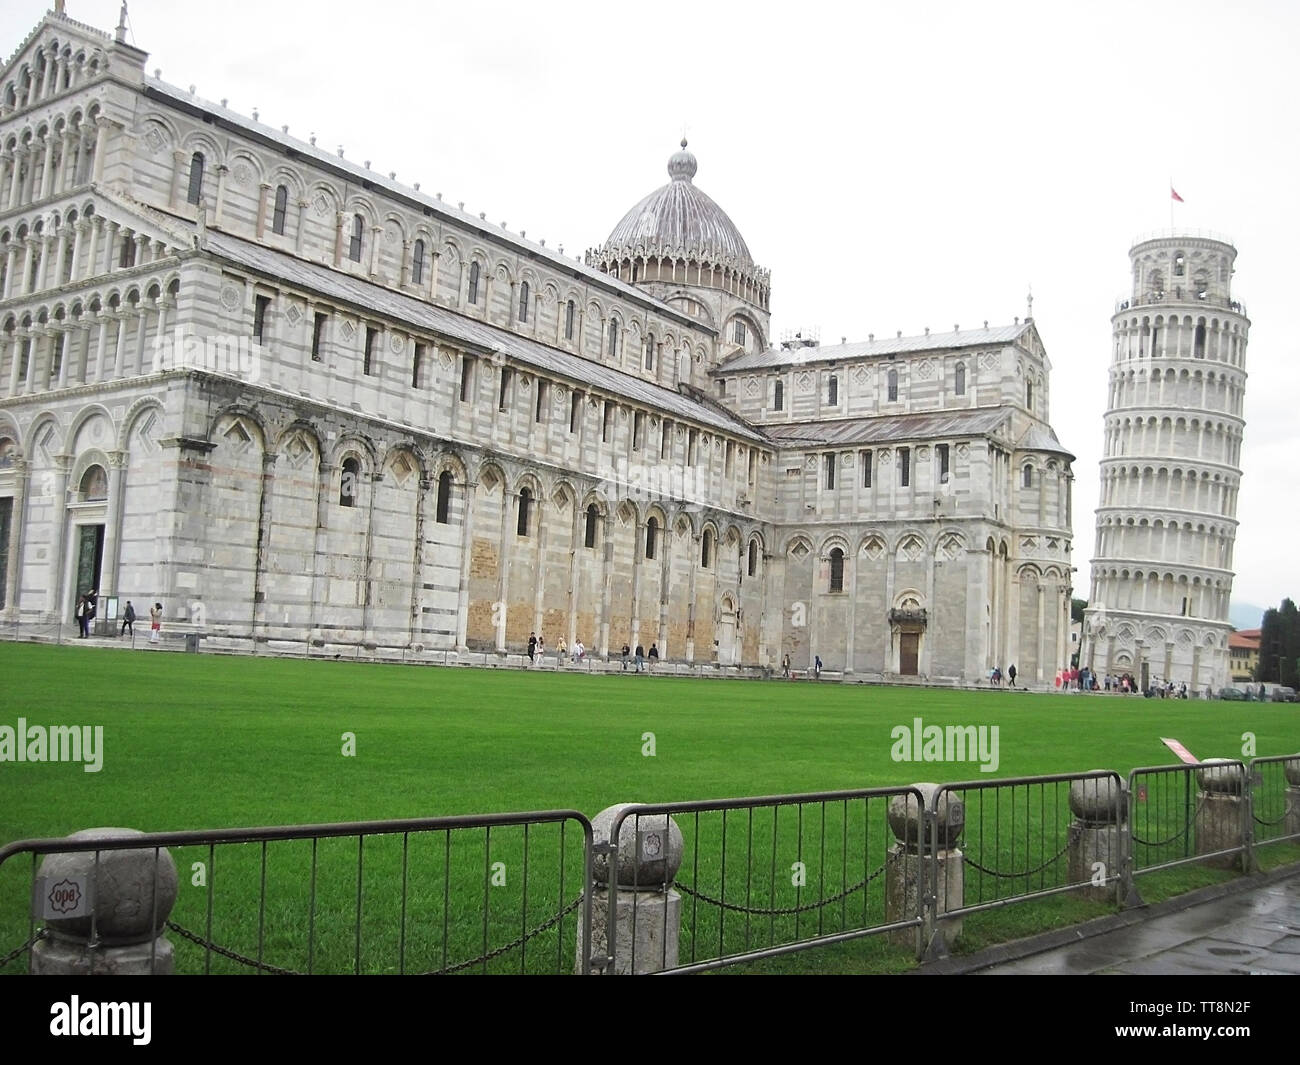 LEANING TOWER OF PISA, THE CAMPANILE,  AND THE DUOMO, CATHEDRAL,PISA, ITALY. Stock Photo